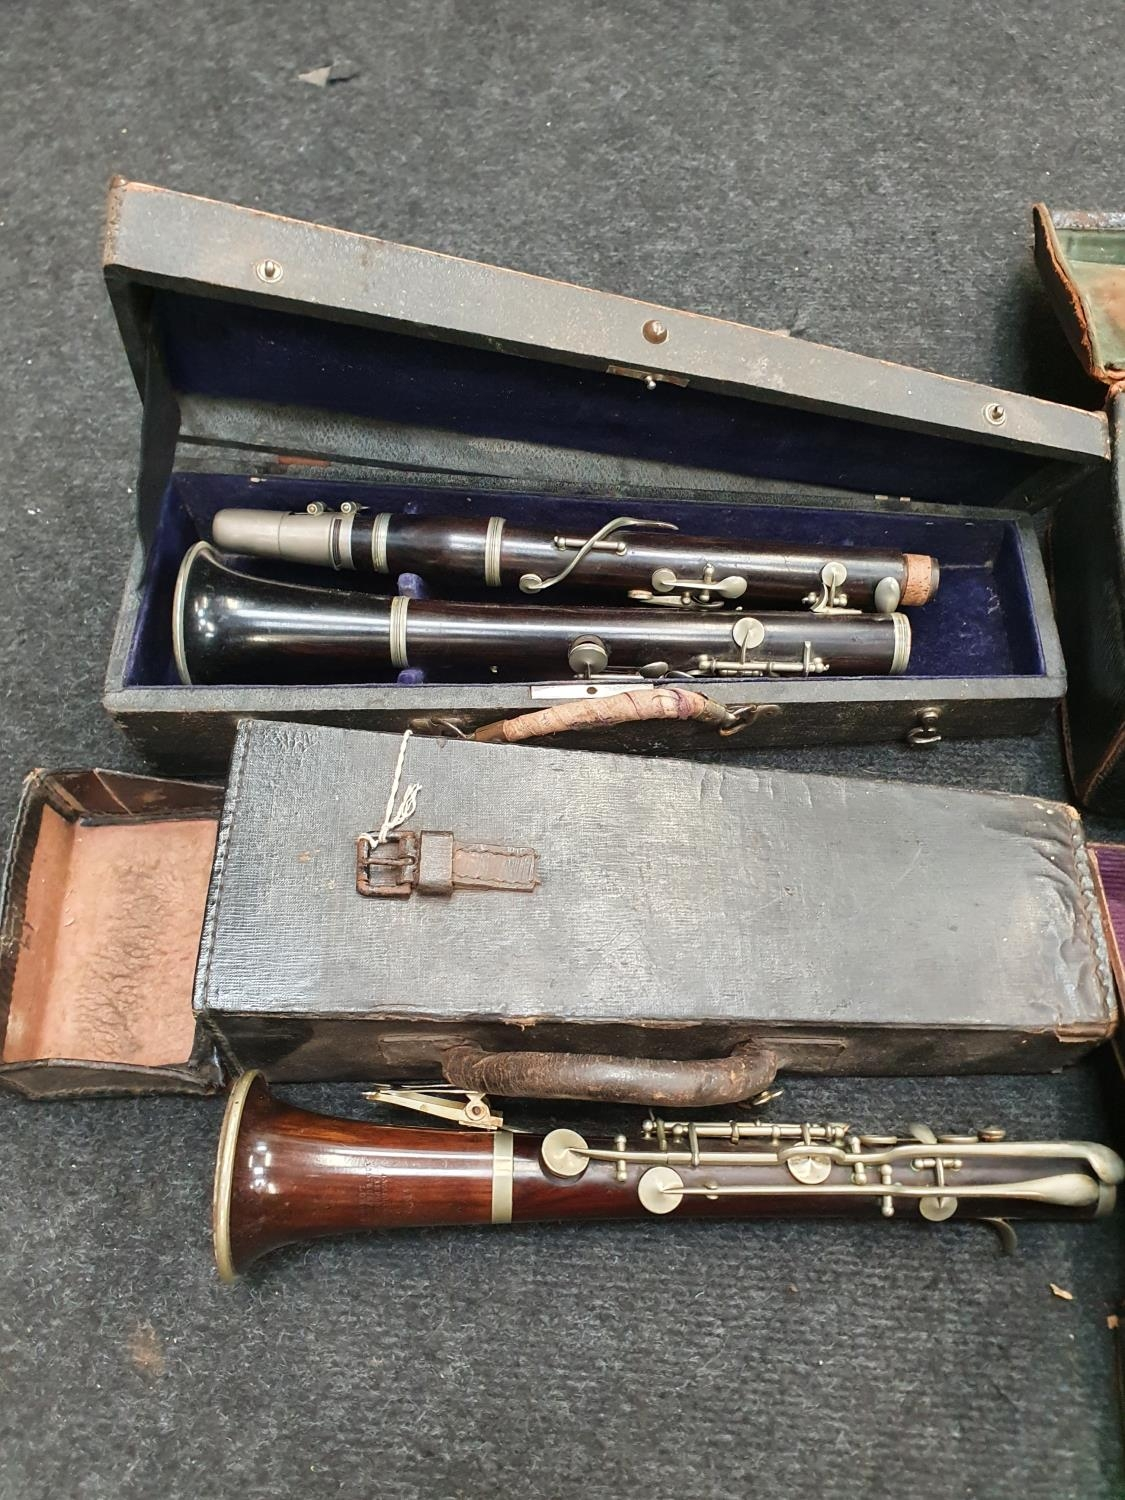 Case of vintage clarinets. - Image 6 of 6